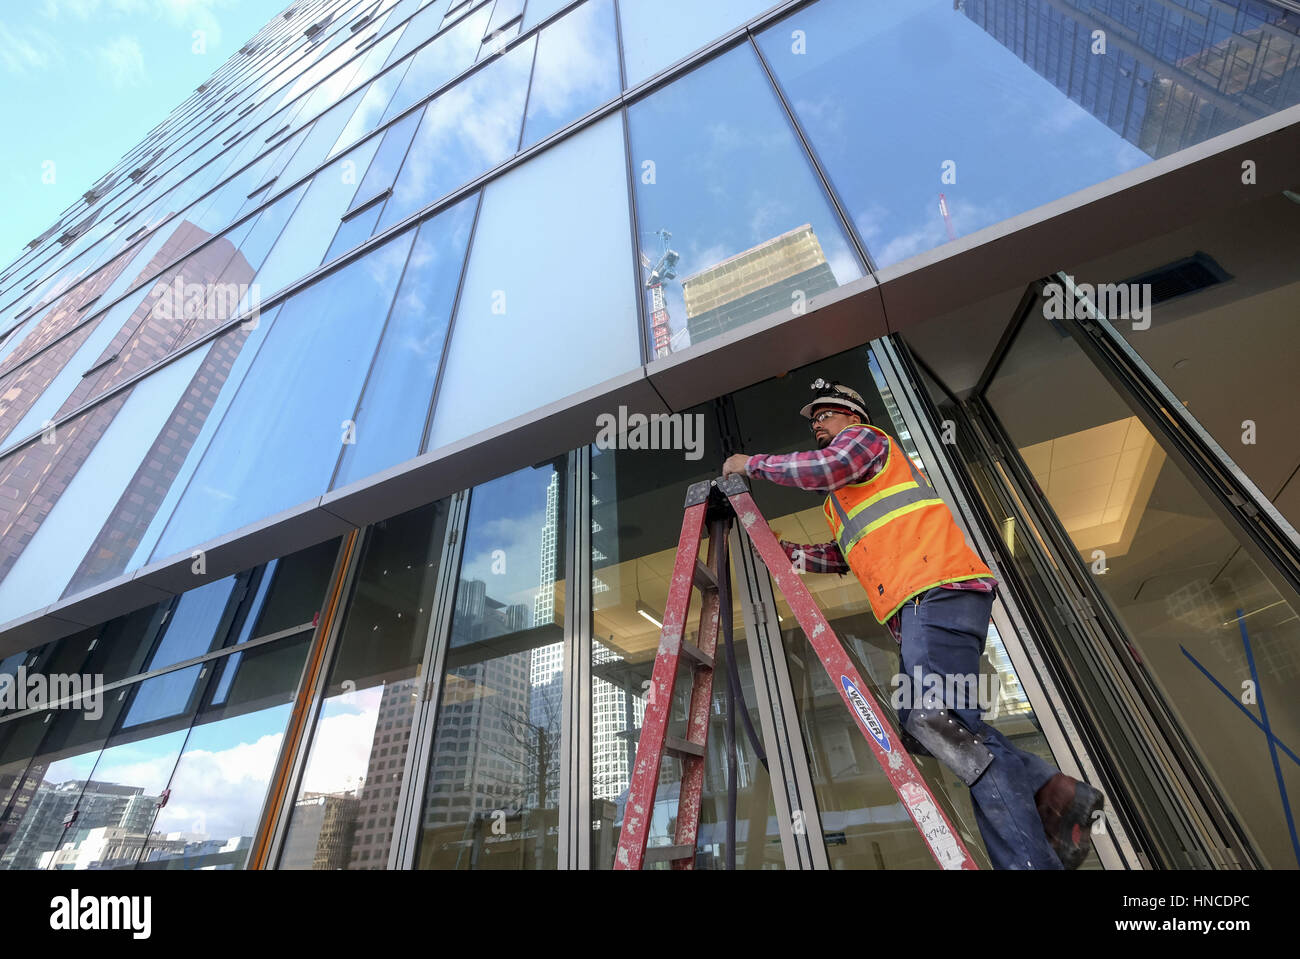 Los Angeles, California, USA. 23rd Jan, 2017. The Hotel Indigo is under construction in downtown Los Angeles. The - Stock Image